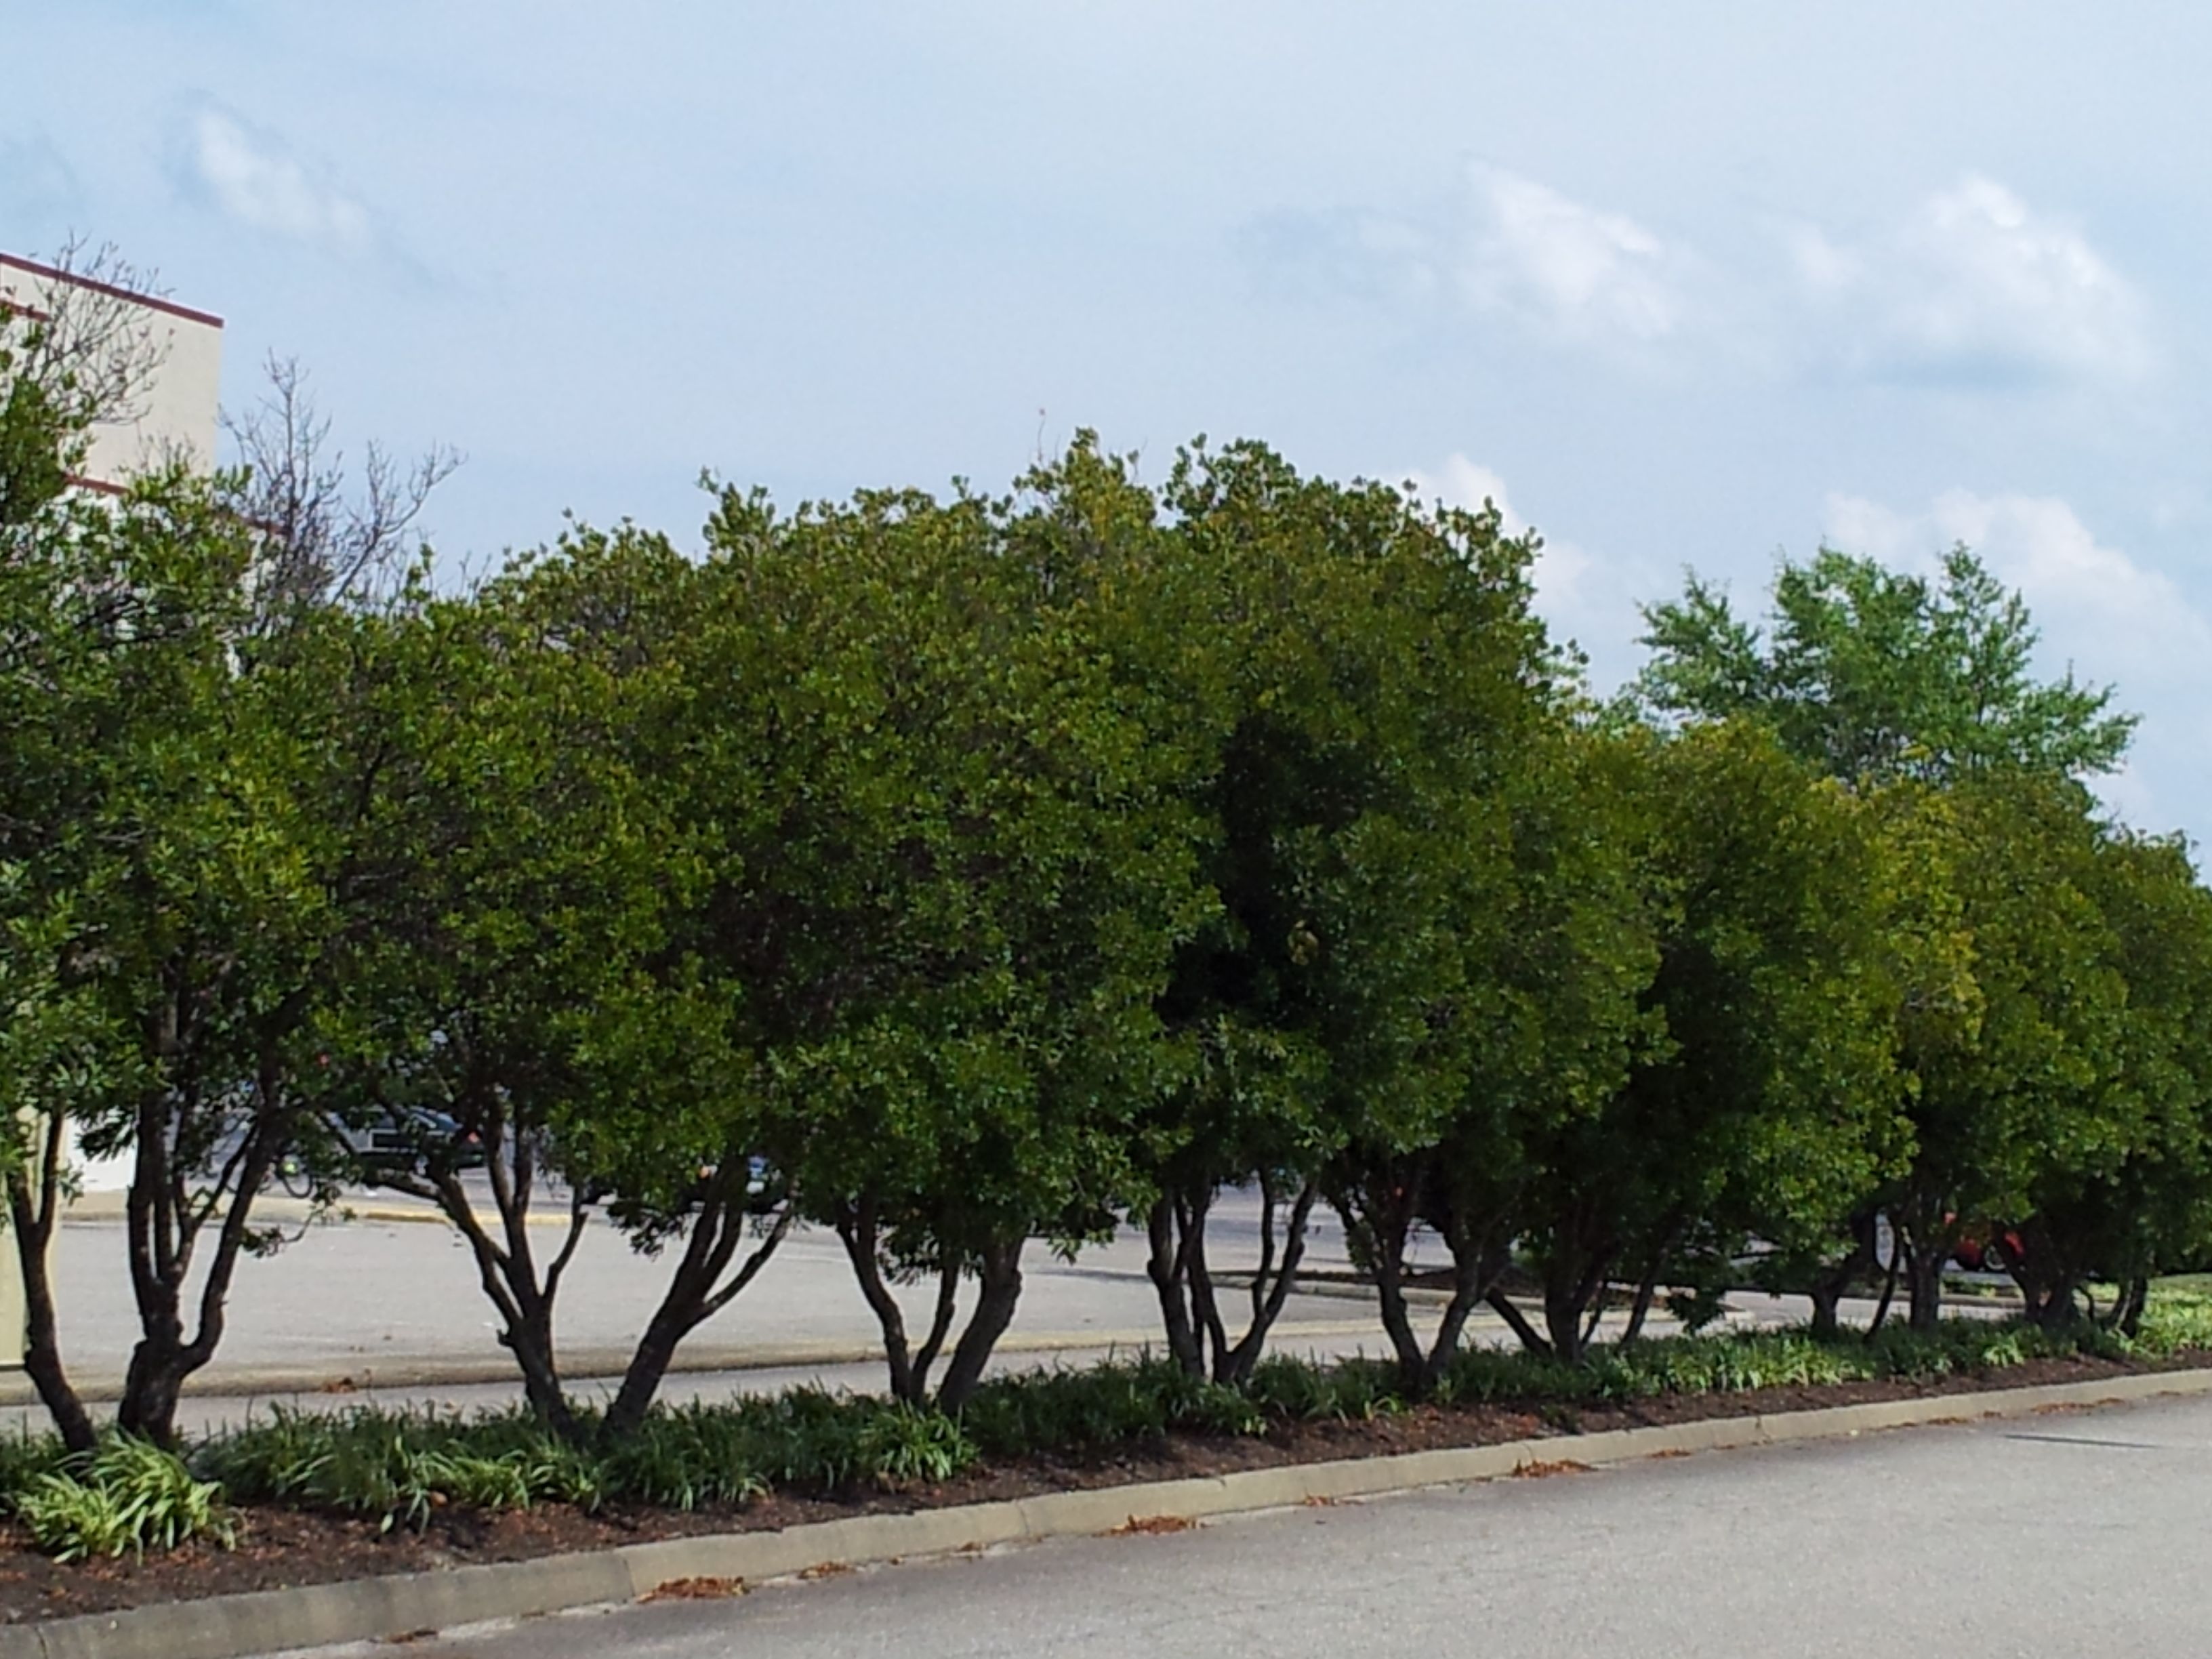 Wax Myrtles Evergreen Can Be Used As A Hedge Or Limbed Up As Small Trees They Will Provid Evergreen Trees For Privacy Landscaping Inspiration Landscape Plans